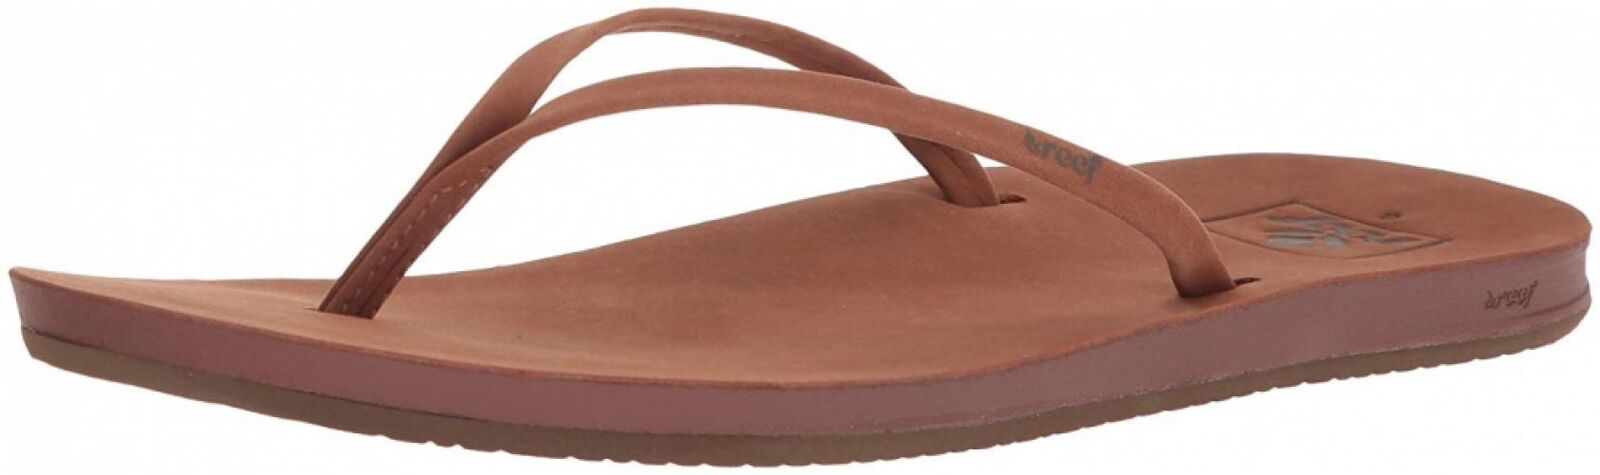 Reef Womens Sandals Slim Le   Leather Flip Flops for Women With Cushion...